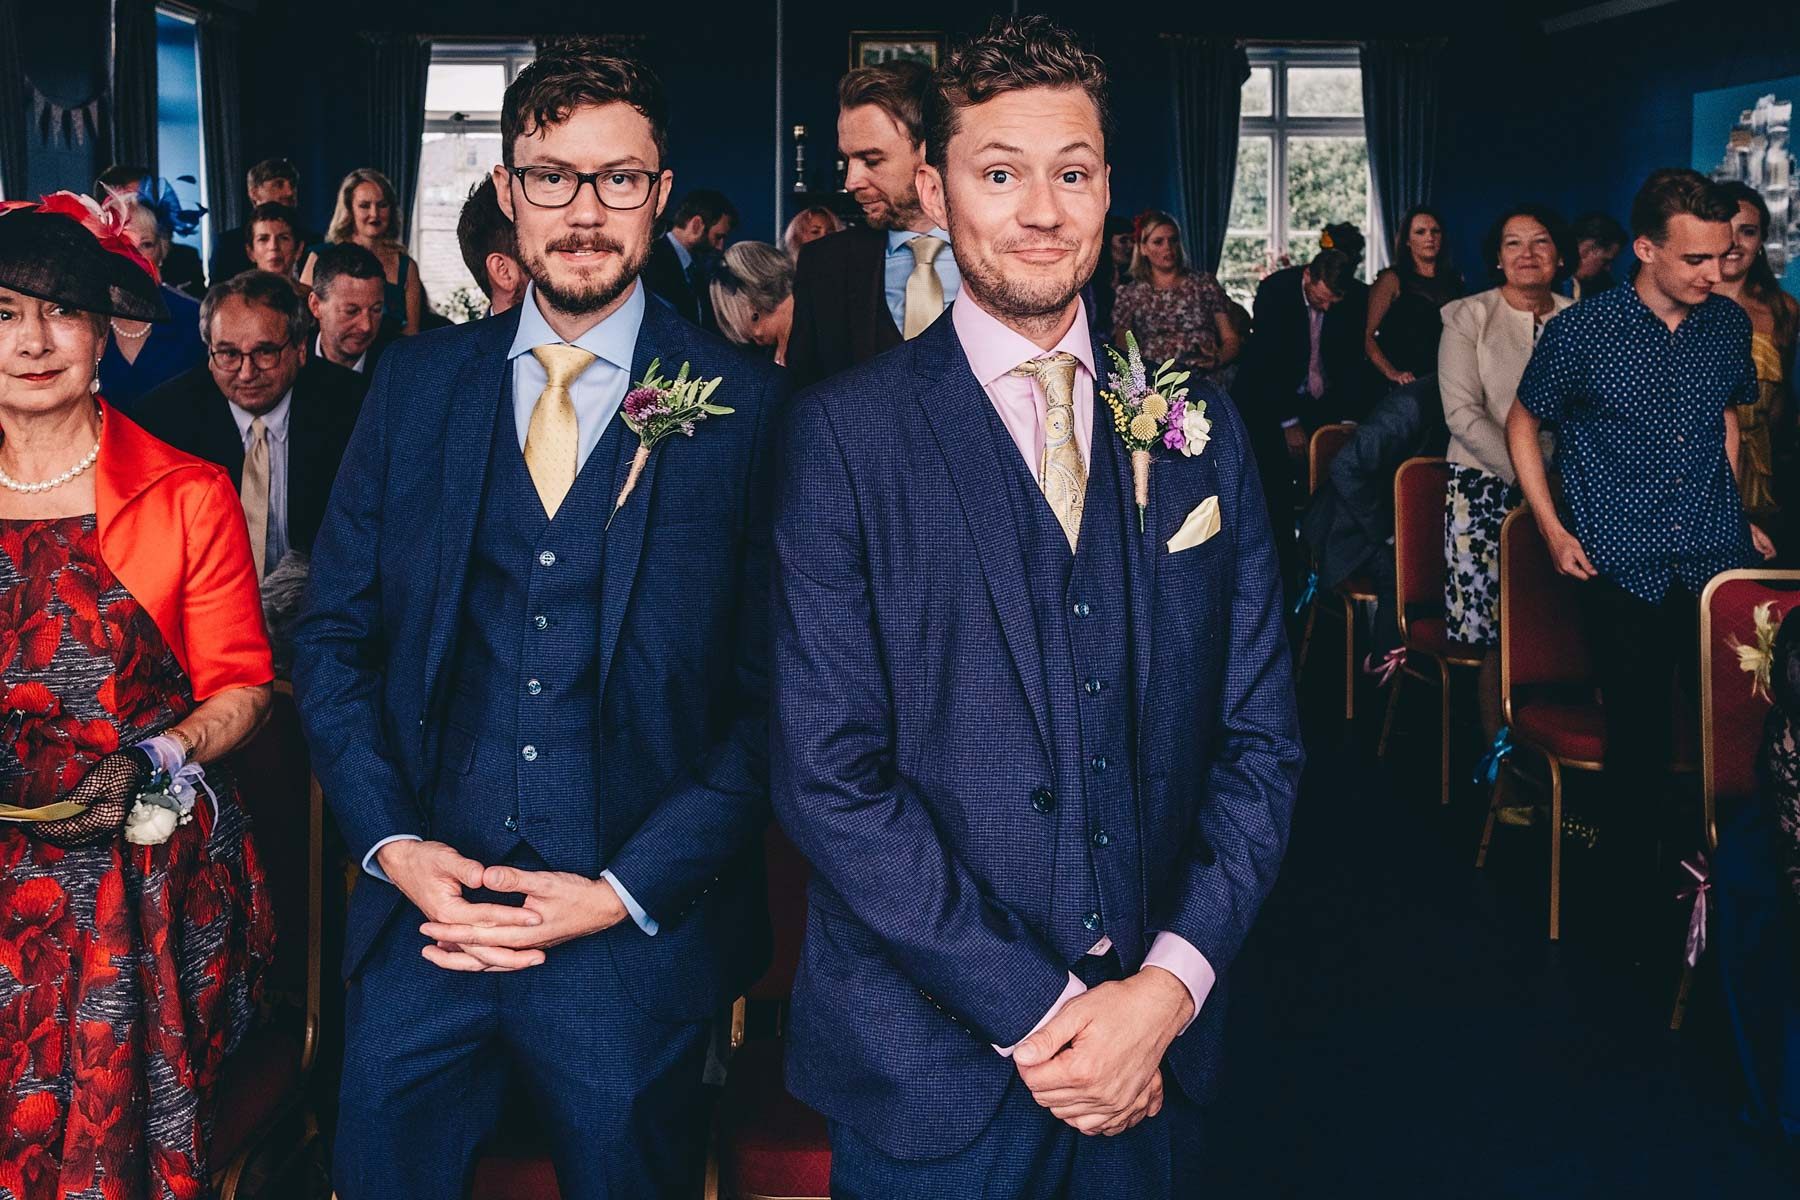 Groom and best man wait nervously for wedding to start